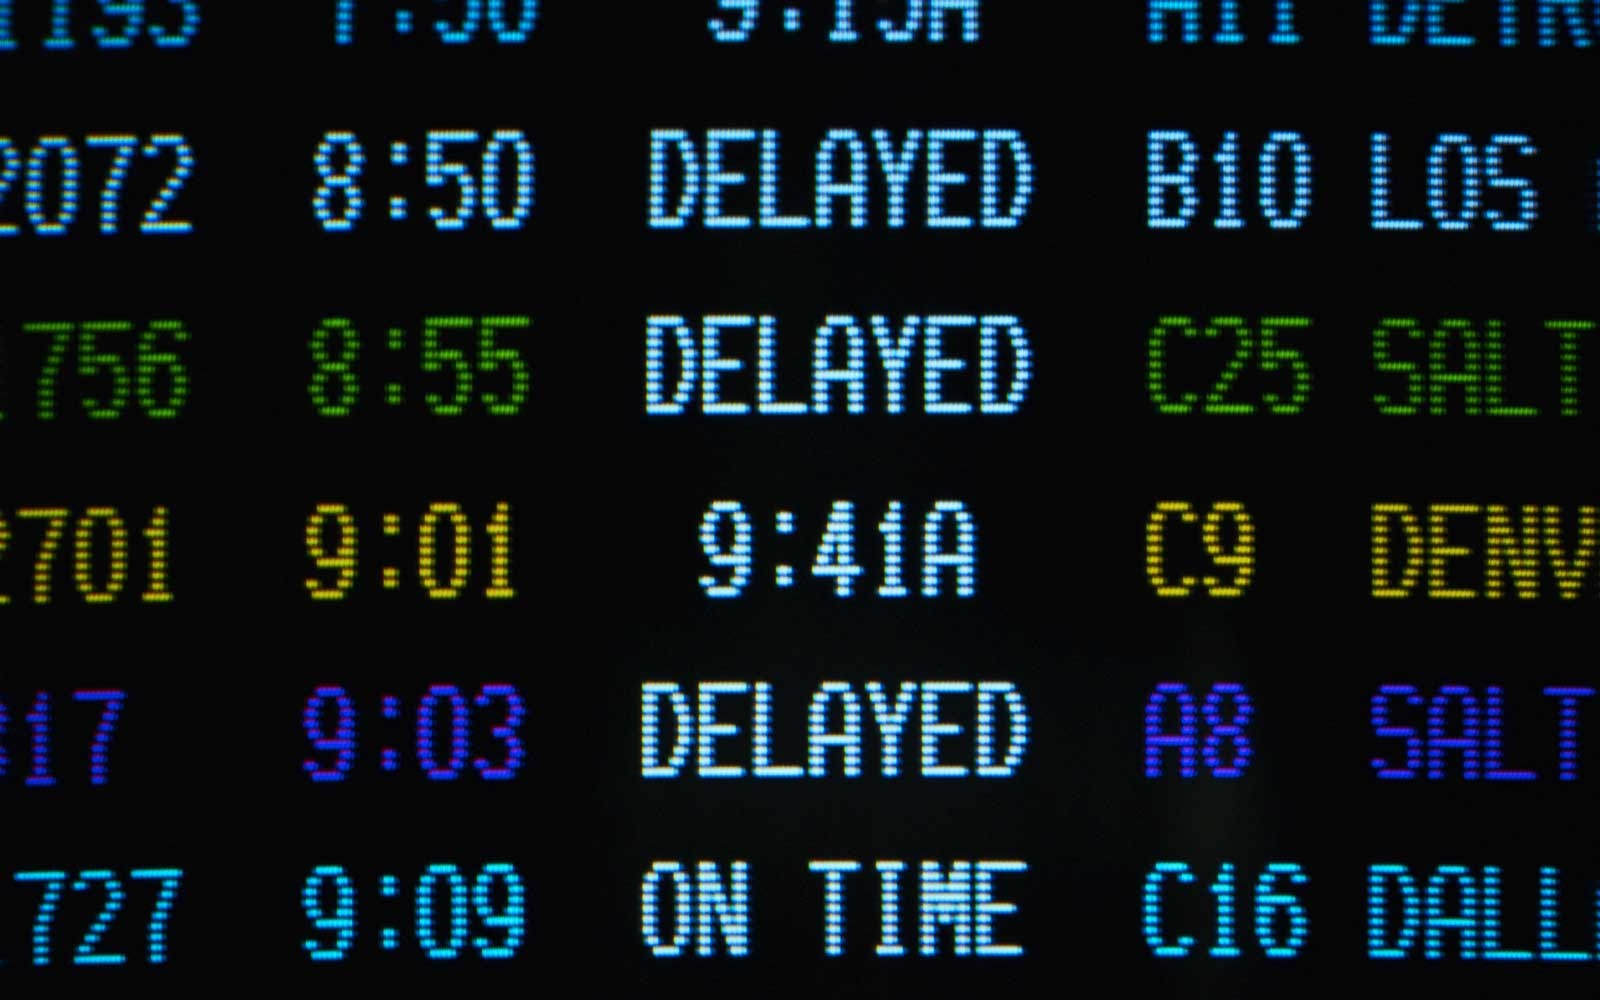 Airlines flight status board